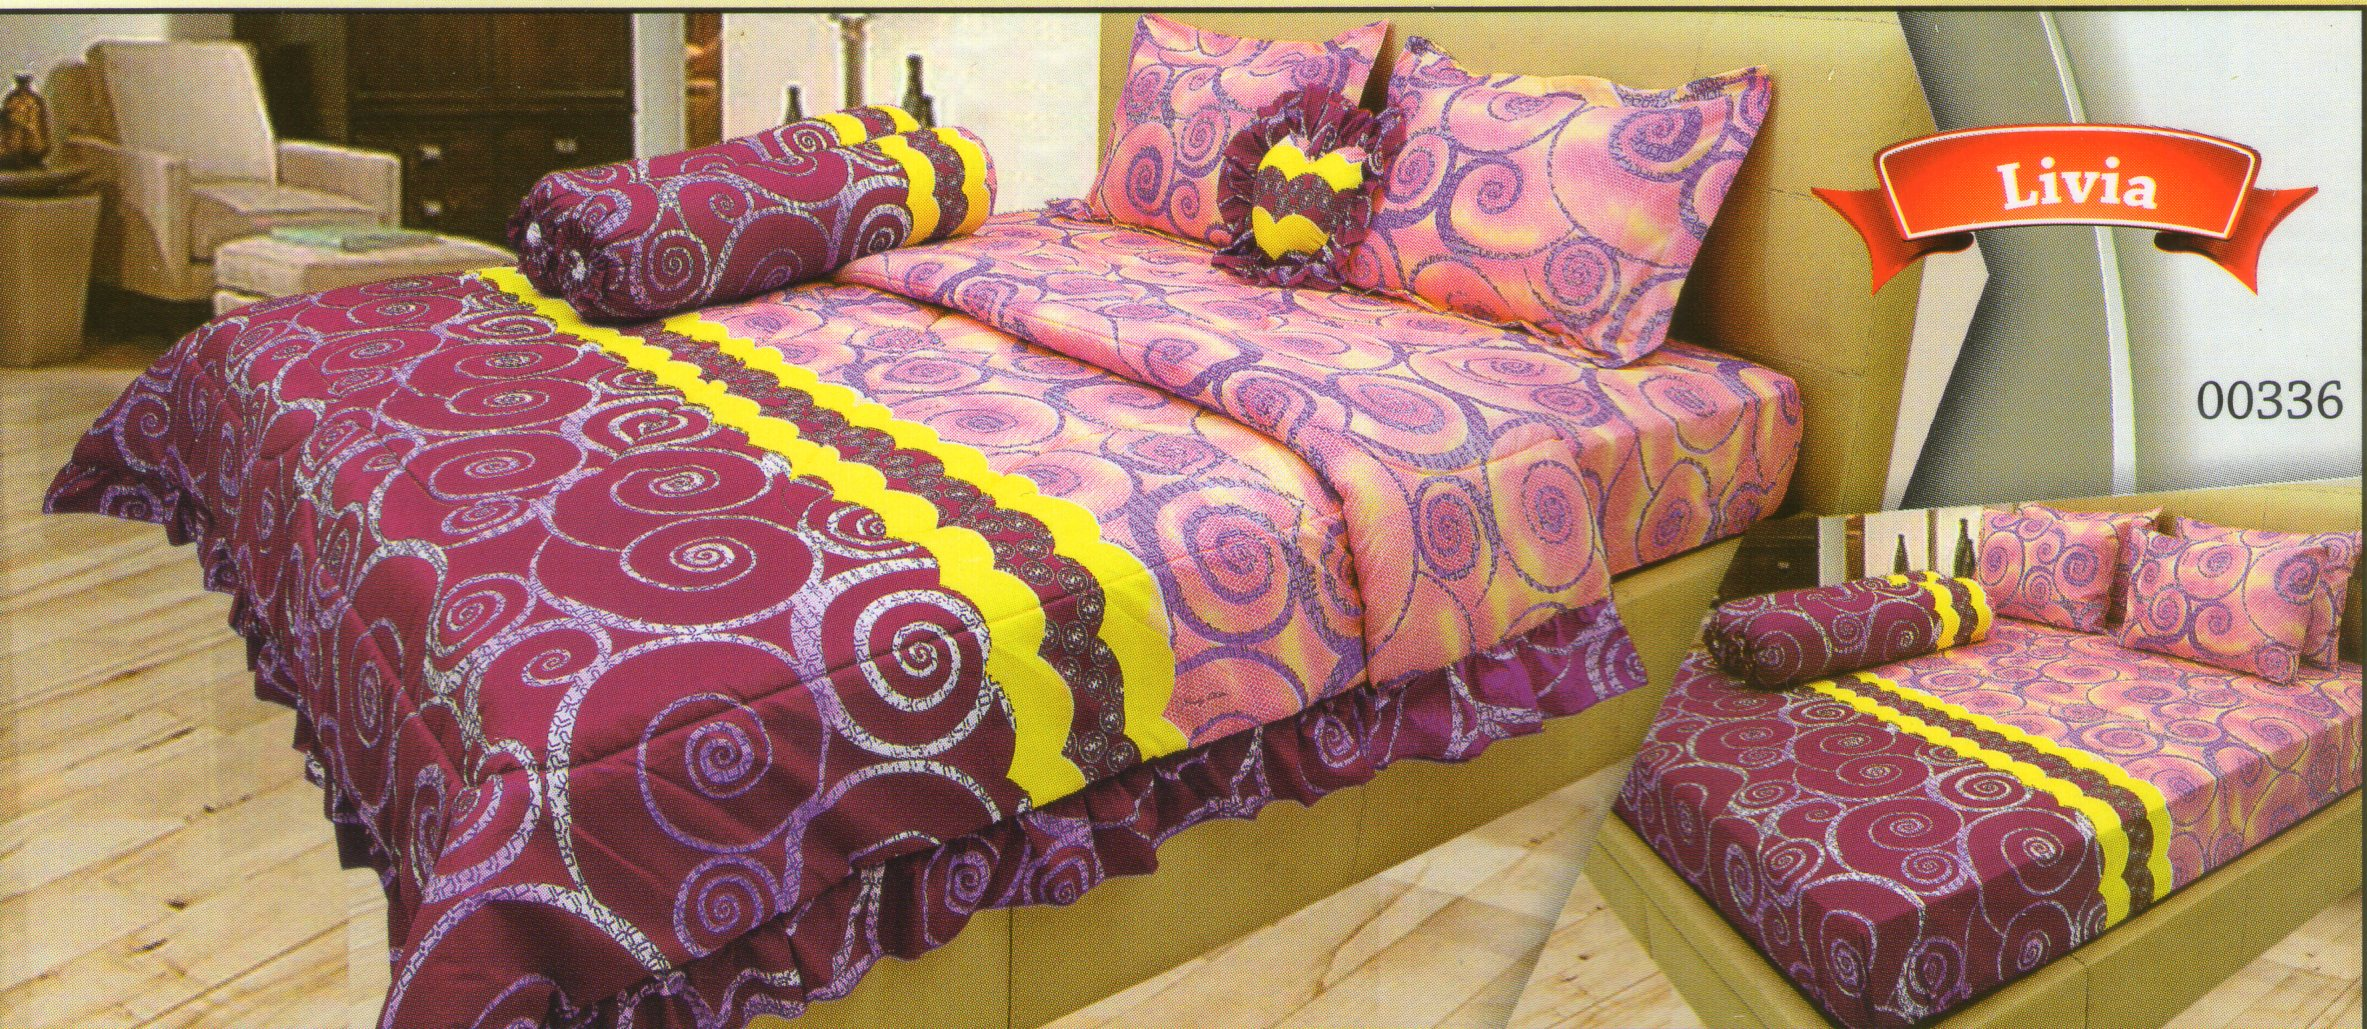 harga bedcover lady rose